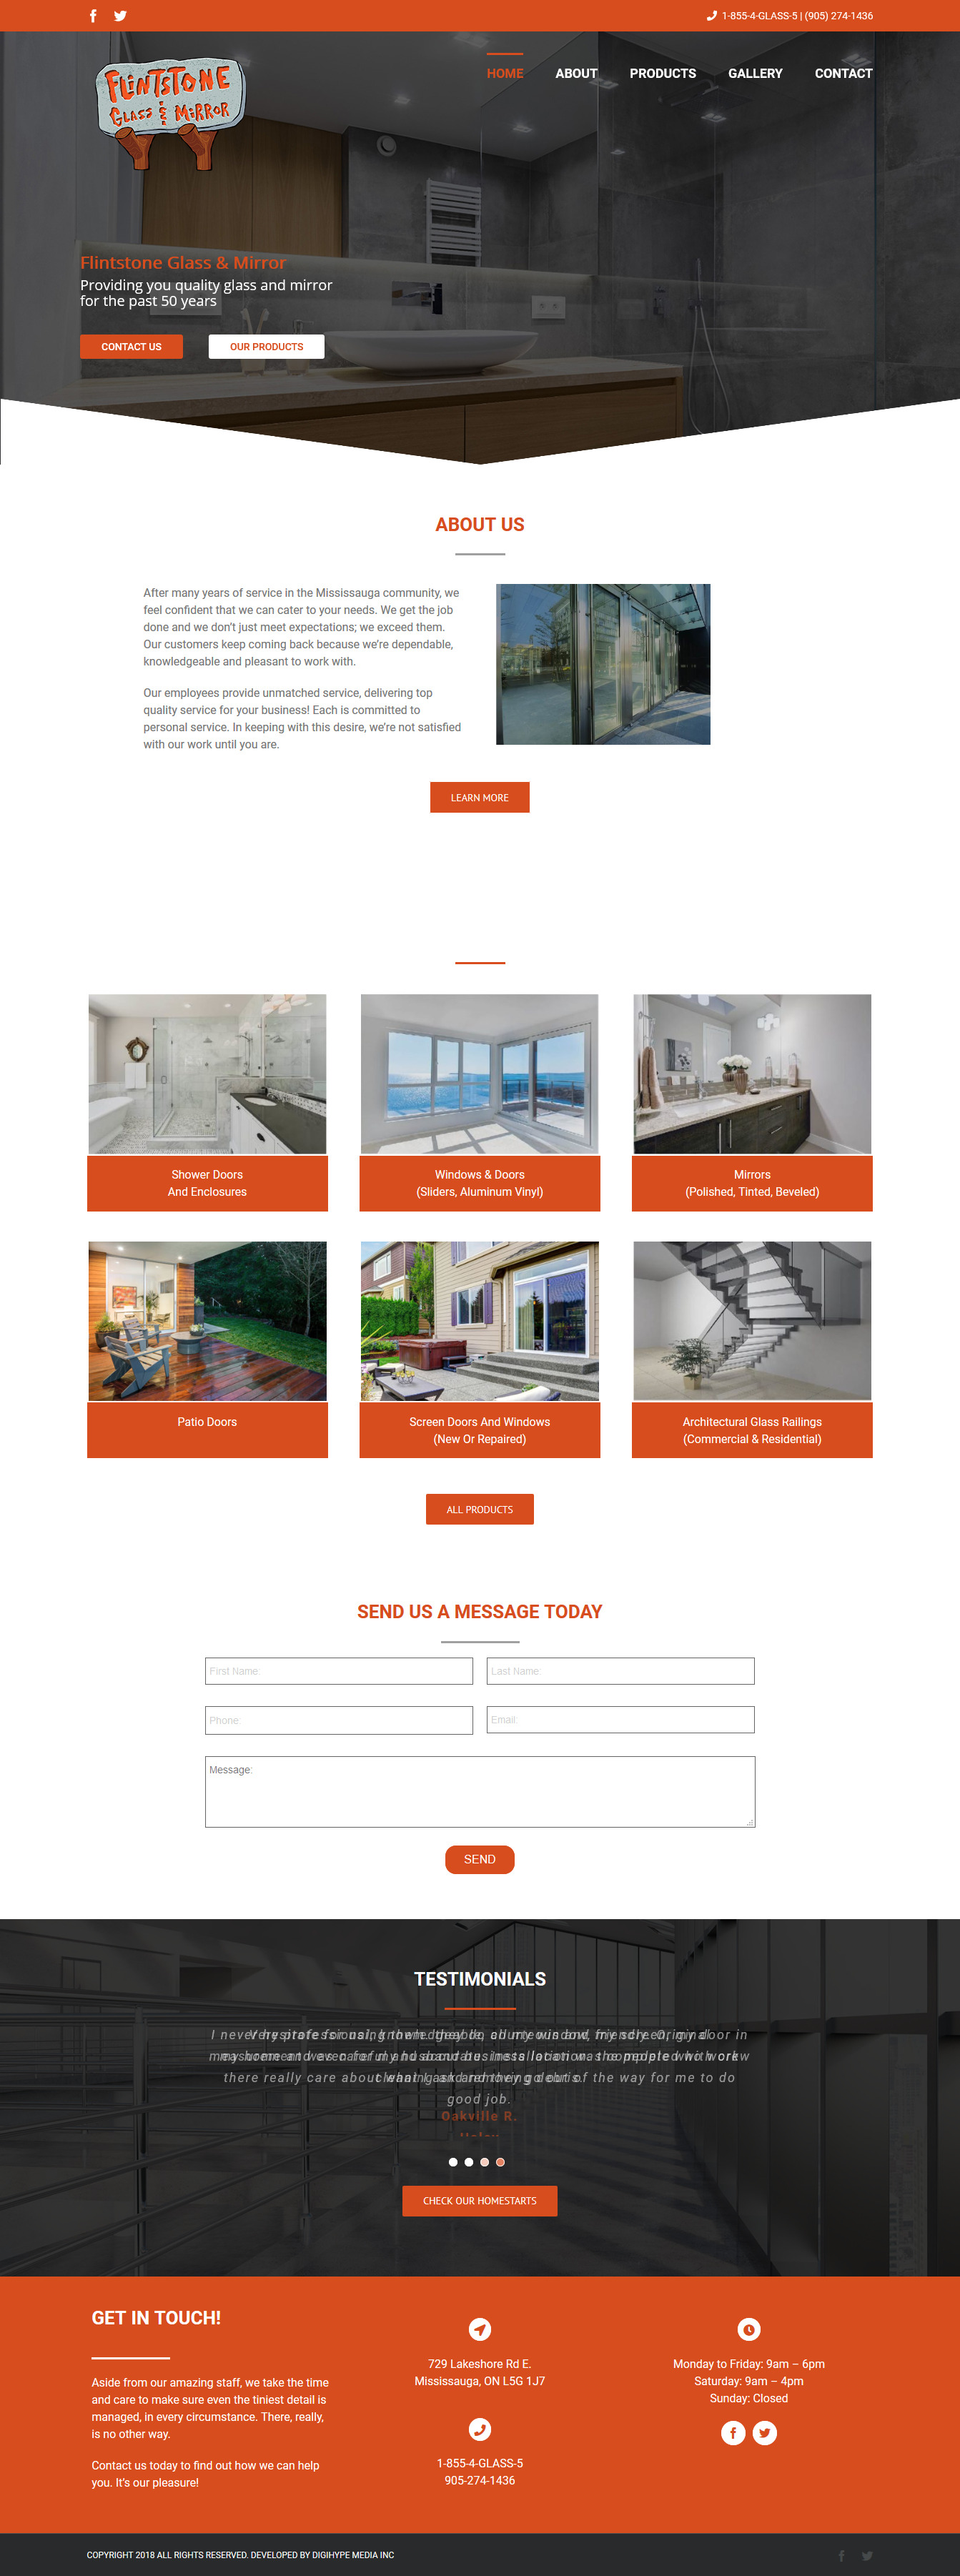 Glass and window repair in Mississauga (website design Mockup)